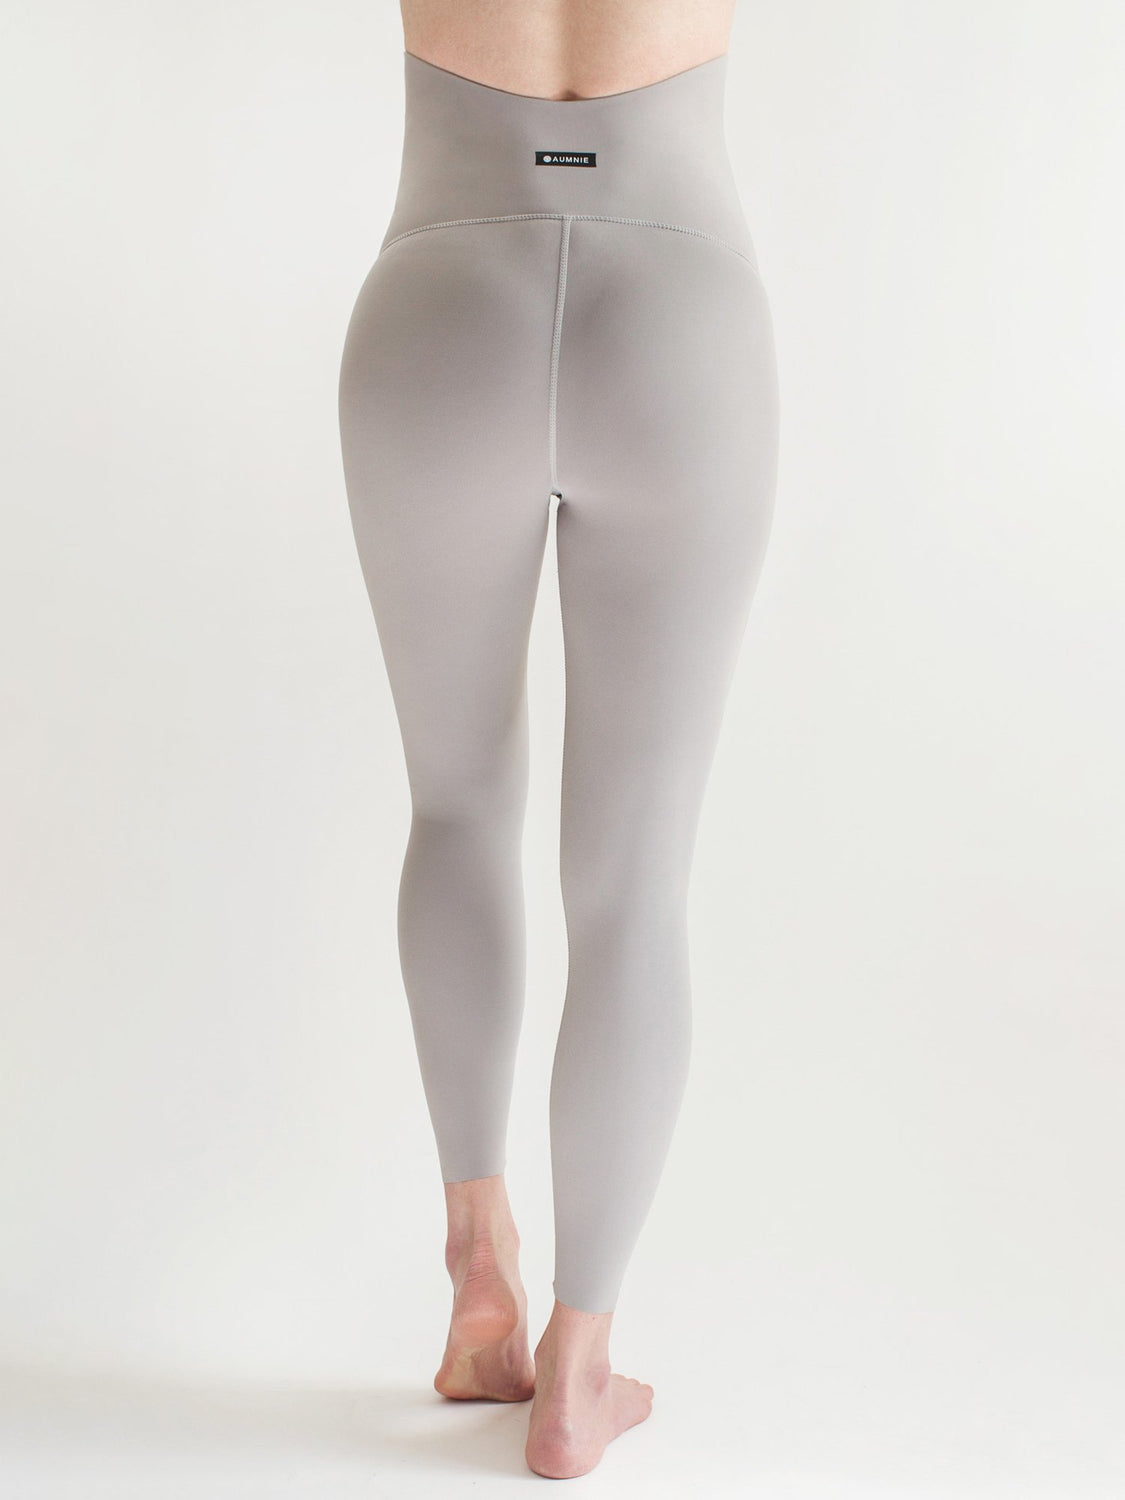 OVER-THE-BUMP MATERNITY SHAPE PANTS, LUNAR GREY